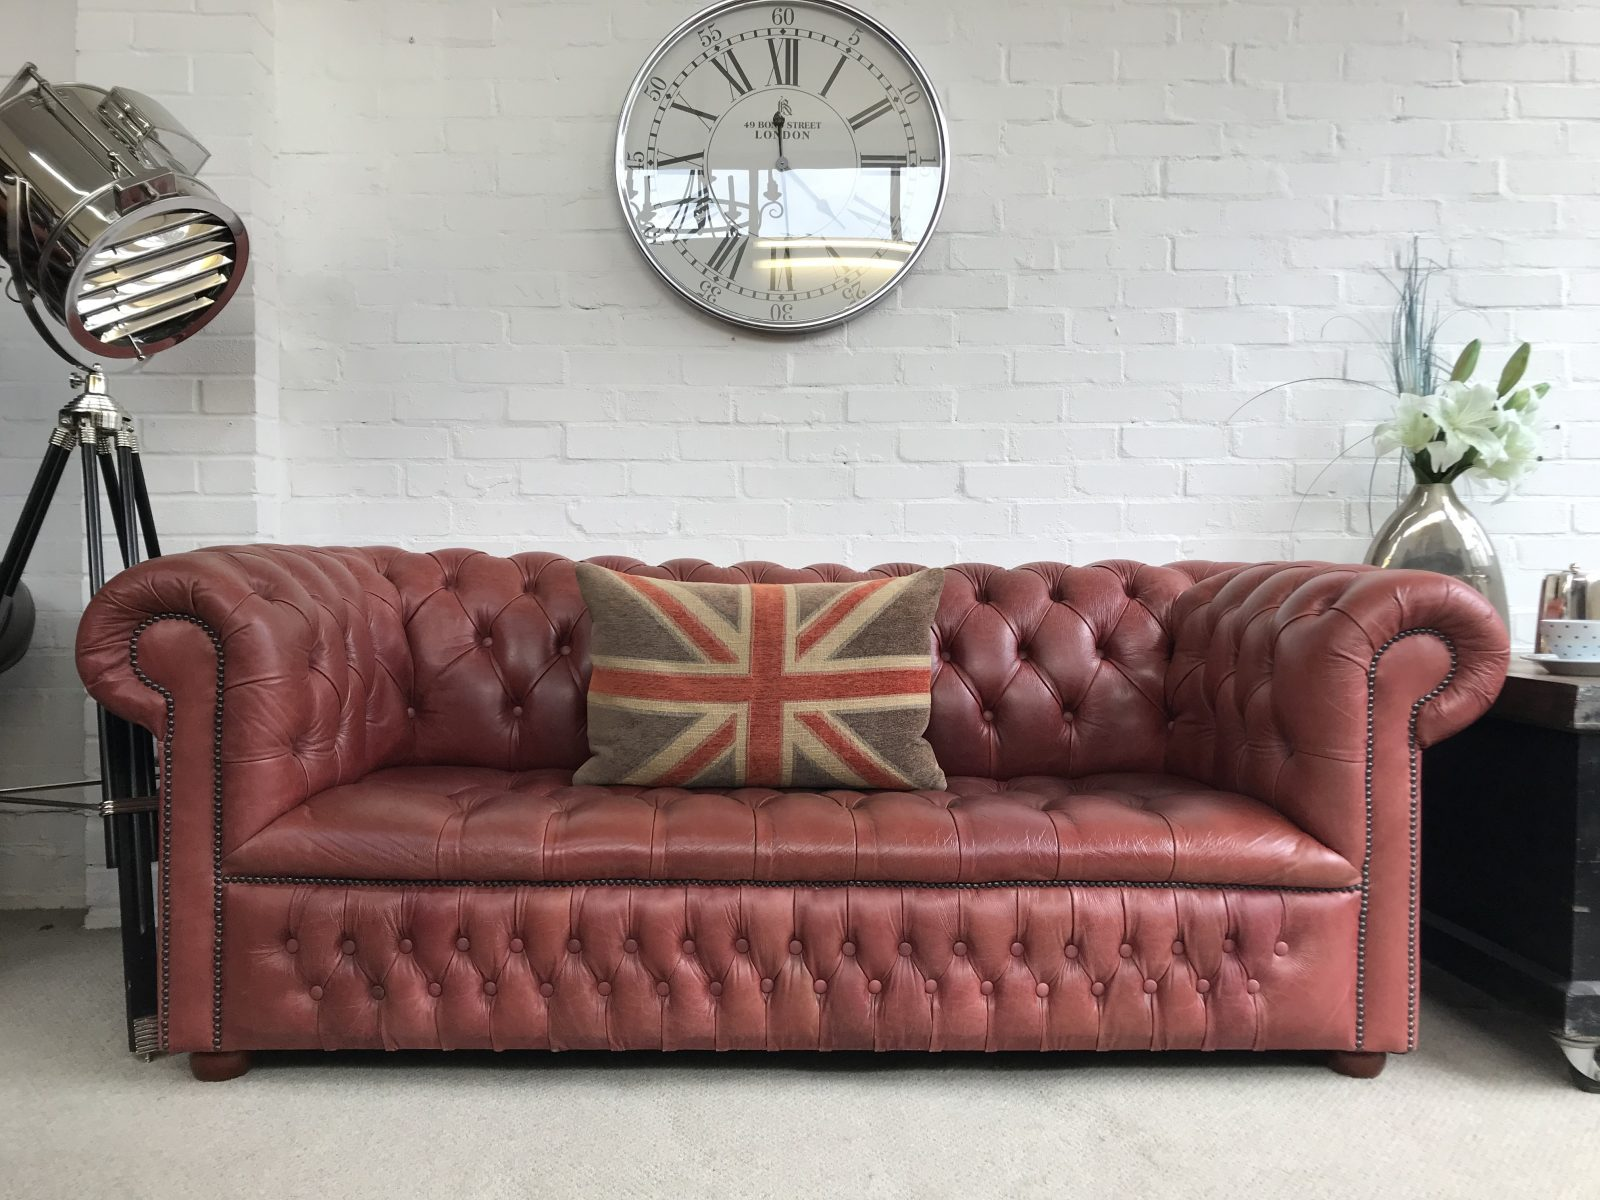 3 Seater Chesterfield Sofa.